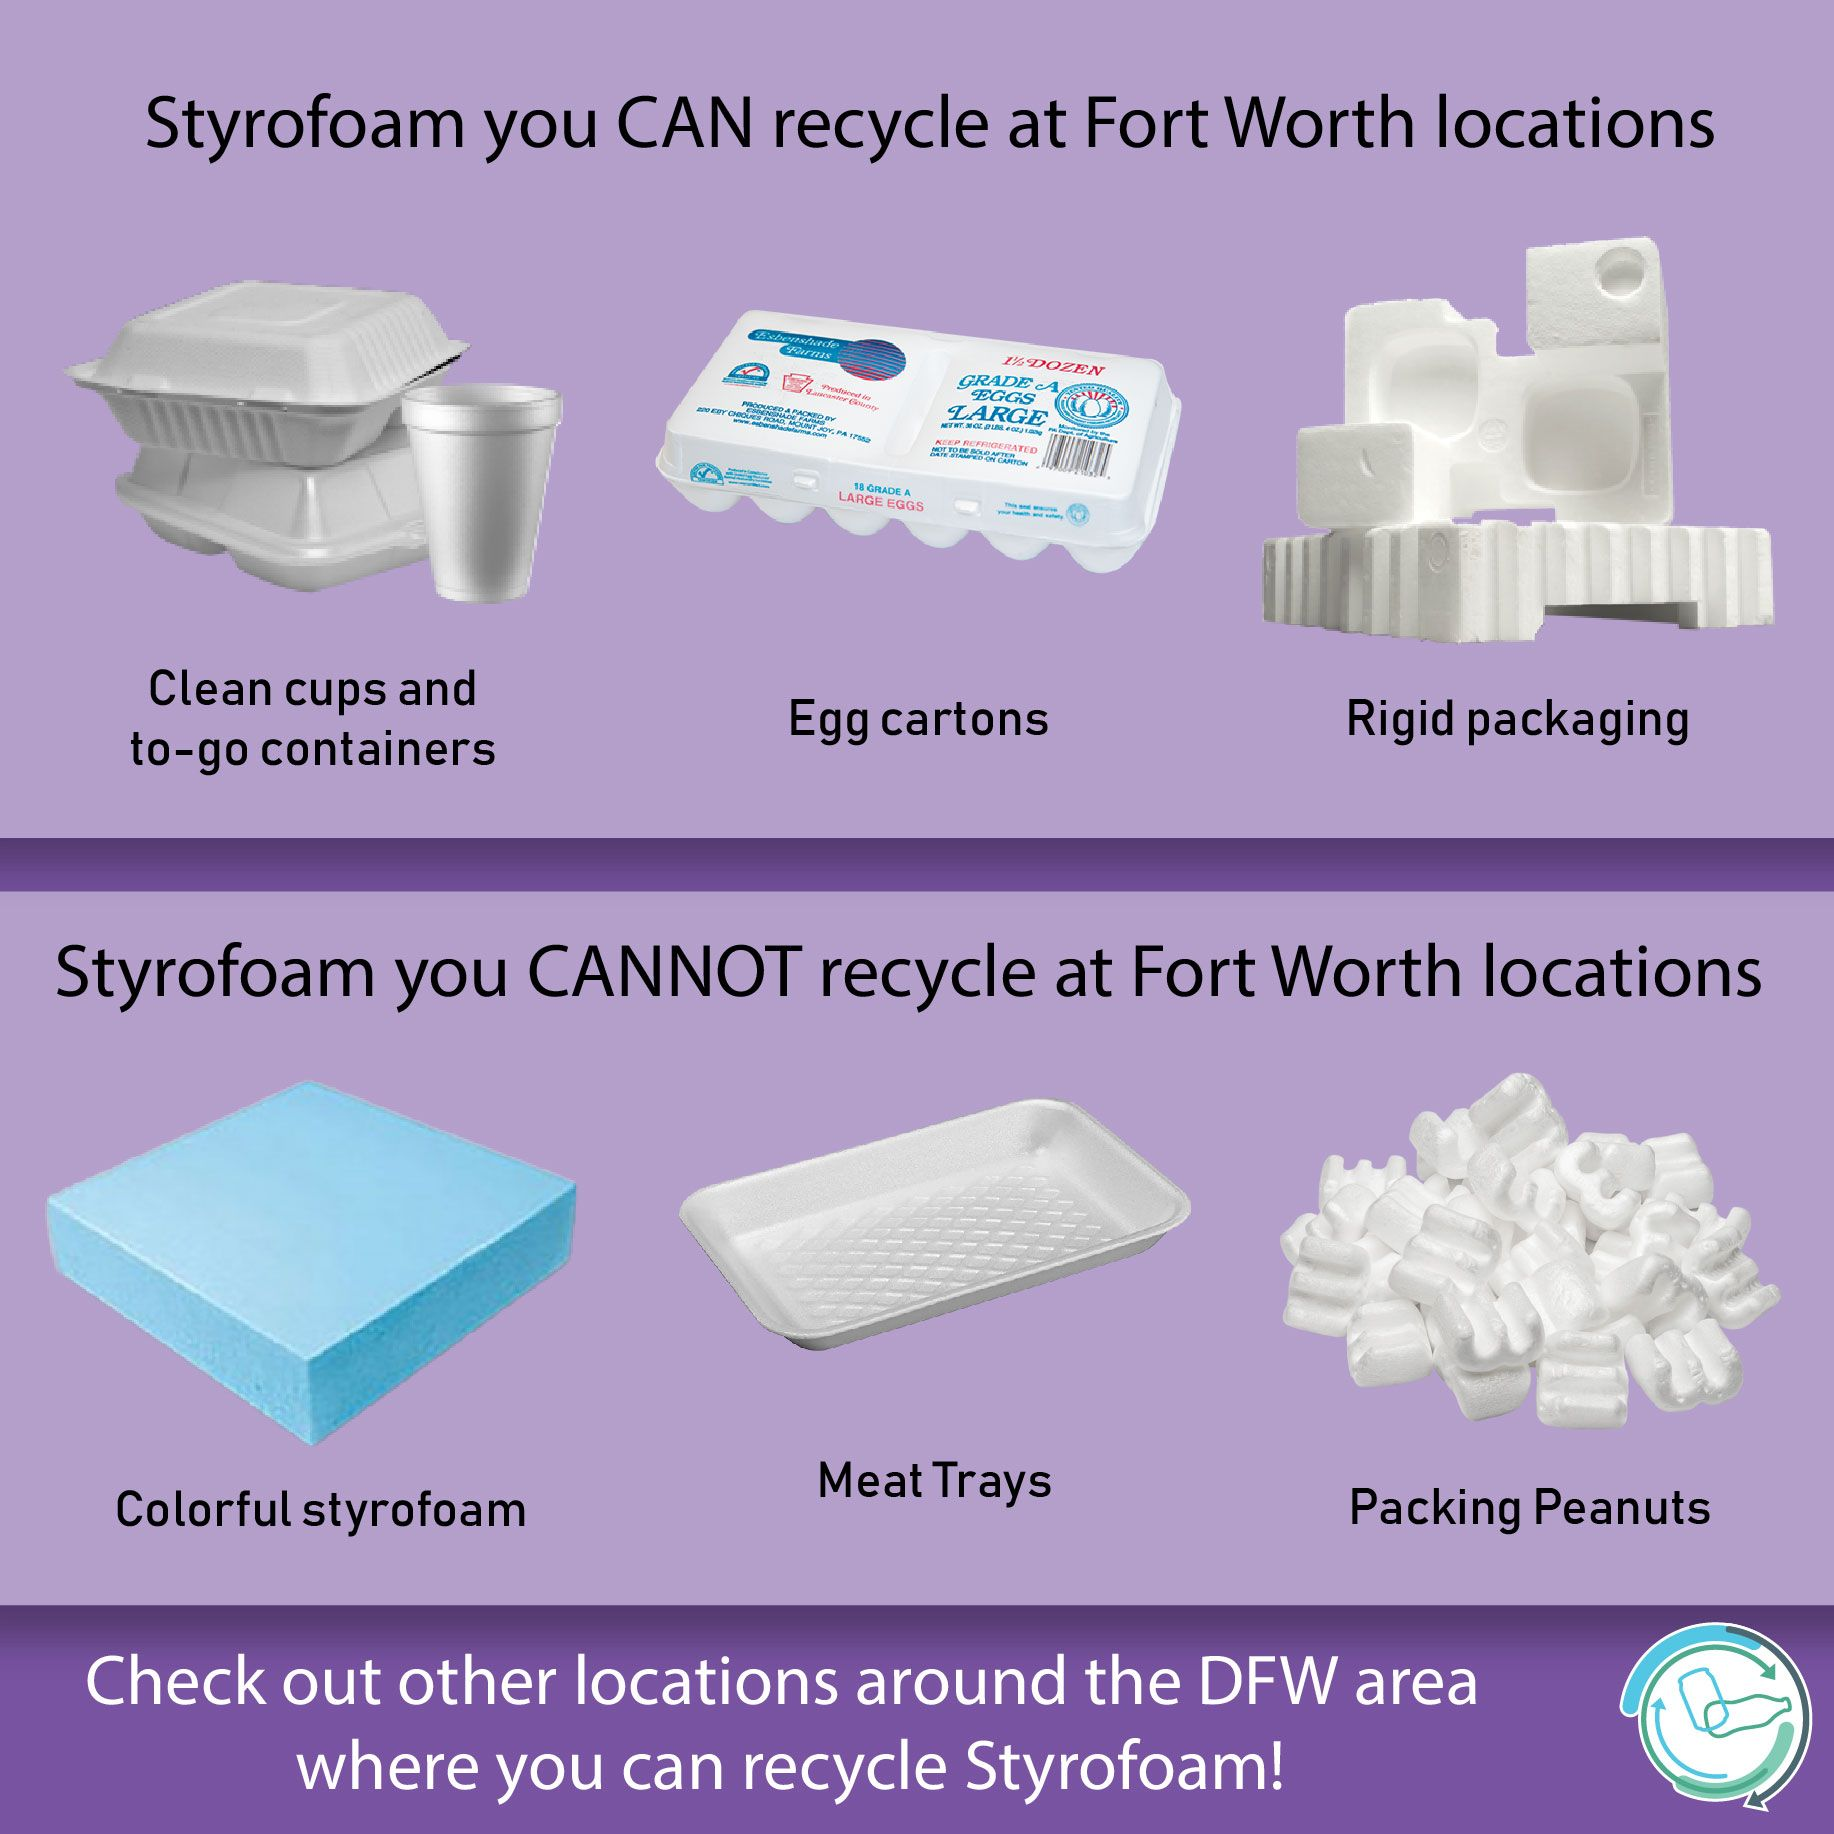 Did You Know Fort Worth Has 4 Drop Off Locations To Recycle Styrofoam You Can Now Recycle Styrofoam Cups Coolers In 2020 Styrofoam Recycling Recycling Styrofoam